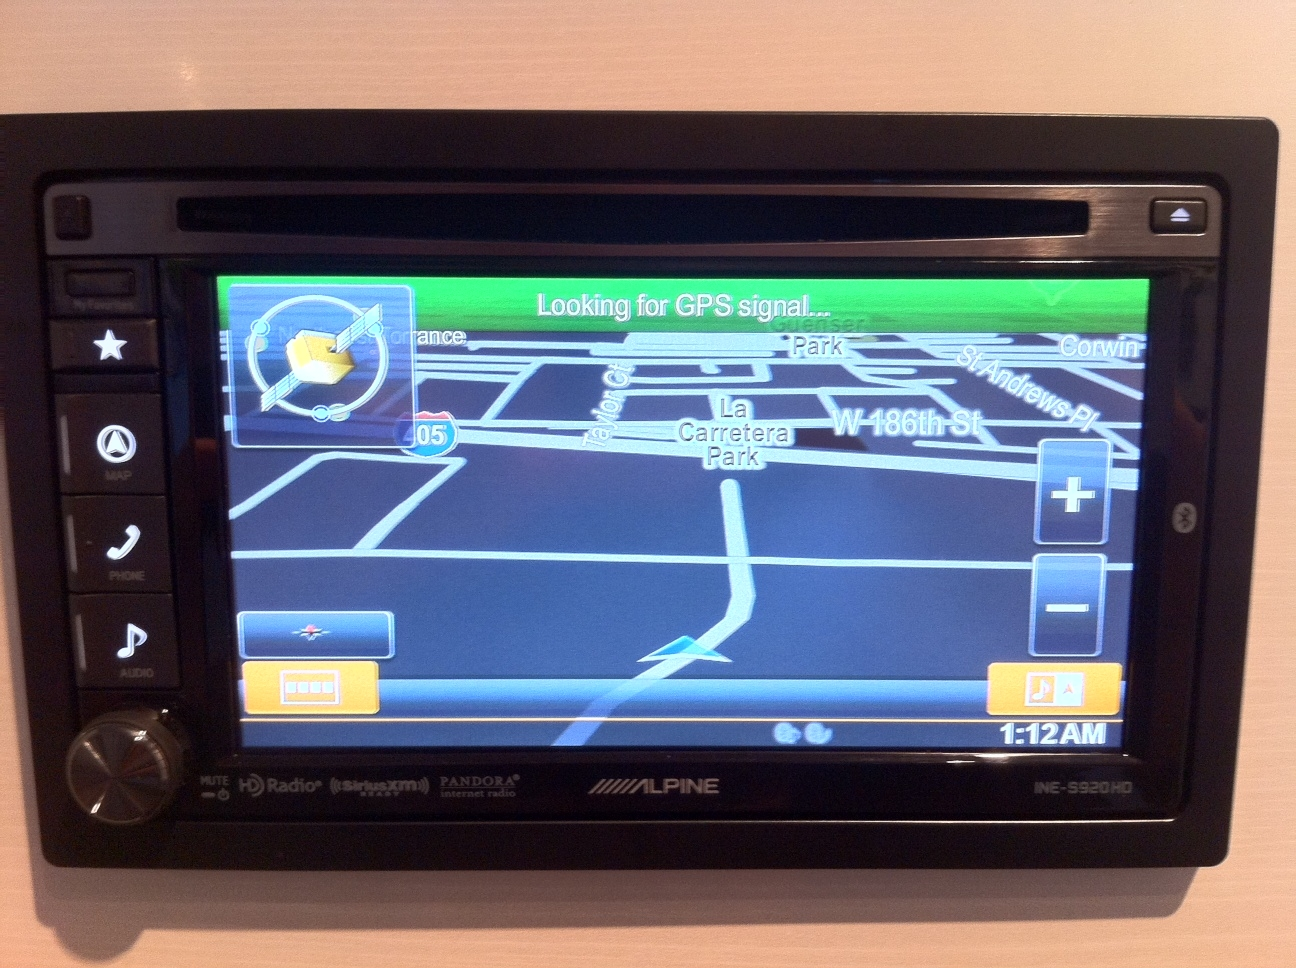 alpine ine s920hd in stock and on display car stereo. Black Bedroom Furniture Sets. Home Design Ideas